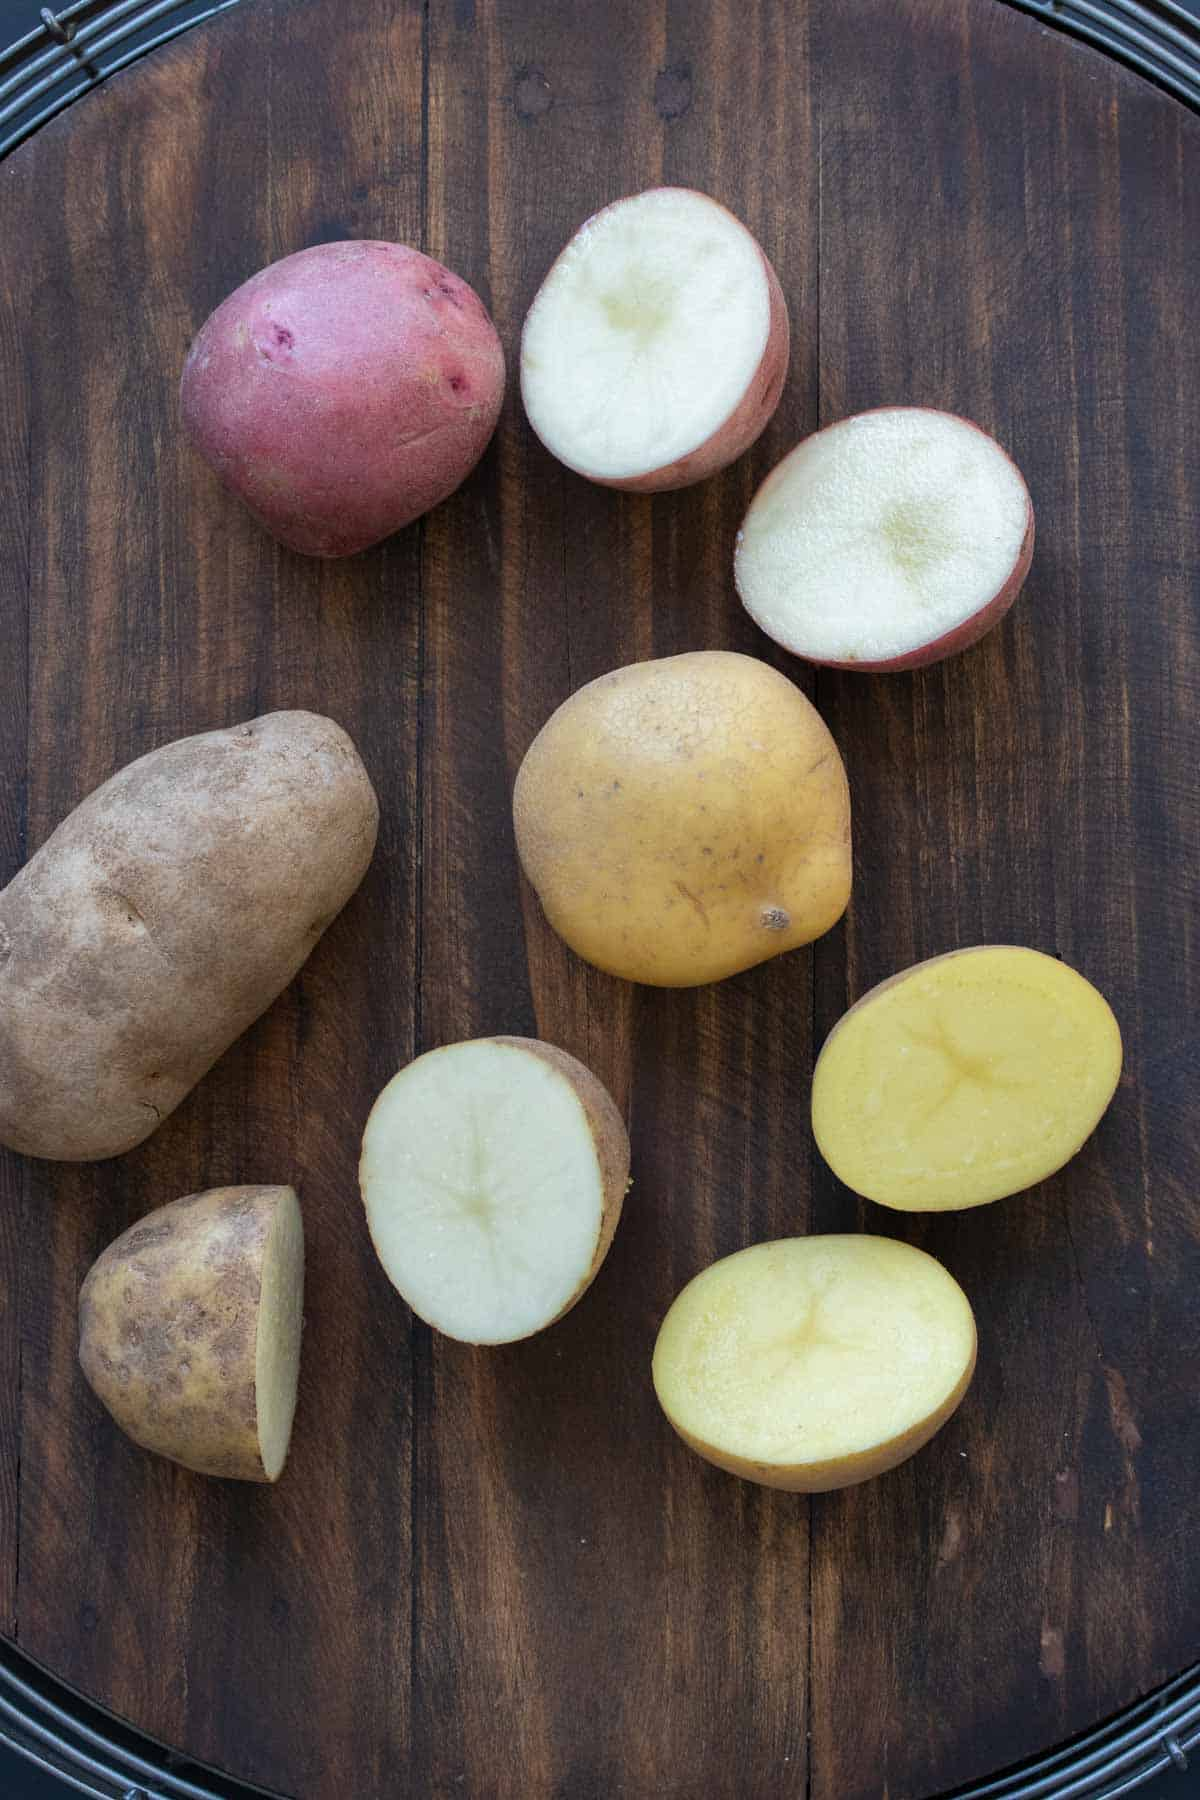 Different kinds of potatoes cut in half on a table